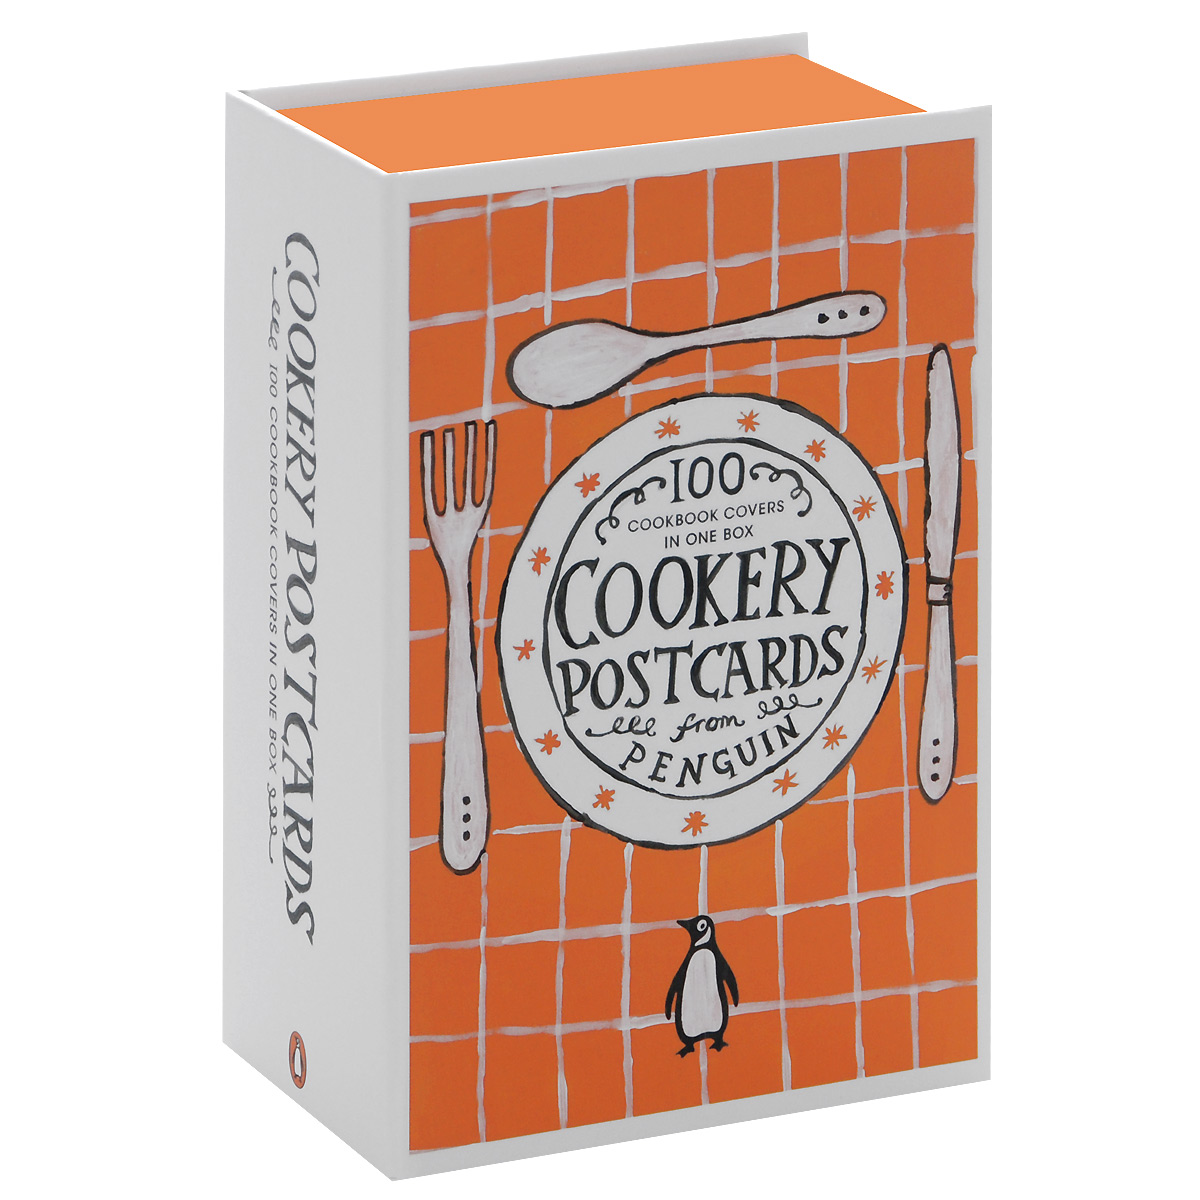 Cookery Postcards: 100 Cookbook Covers in One Box the working class foodies cookbook